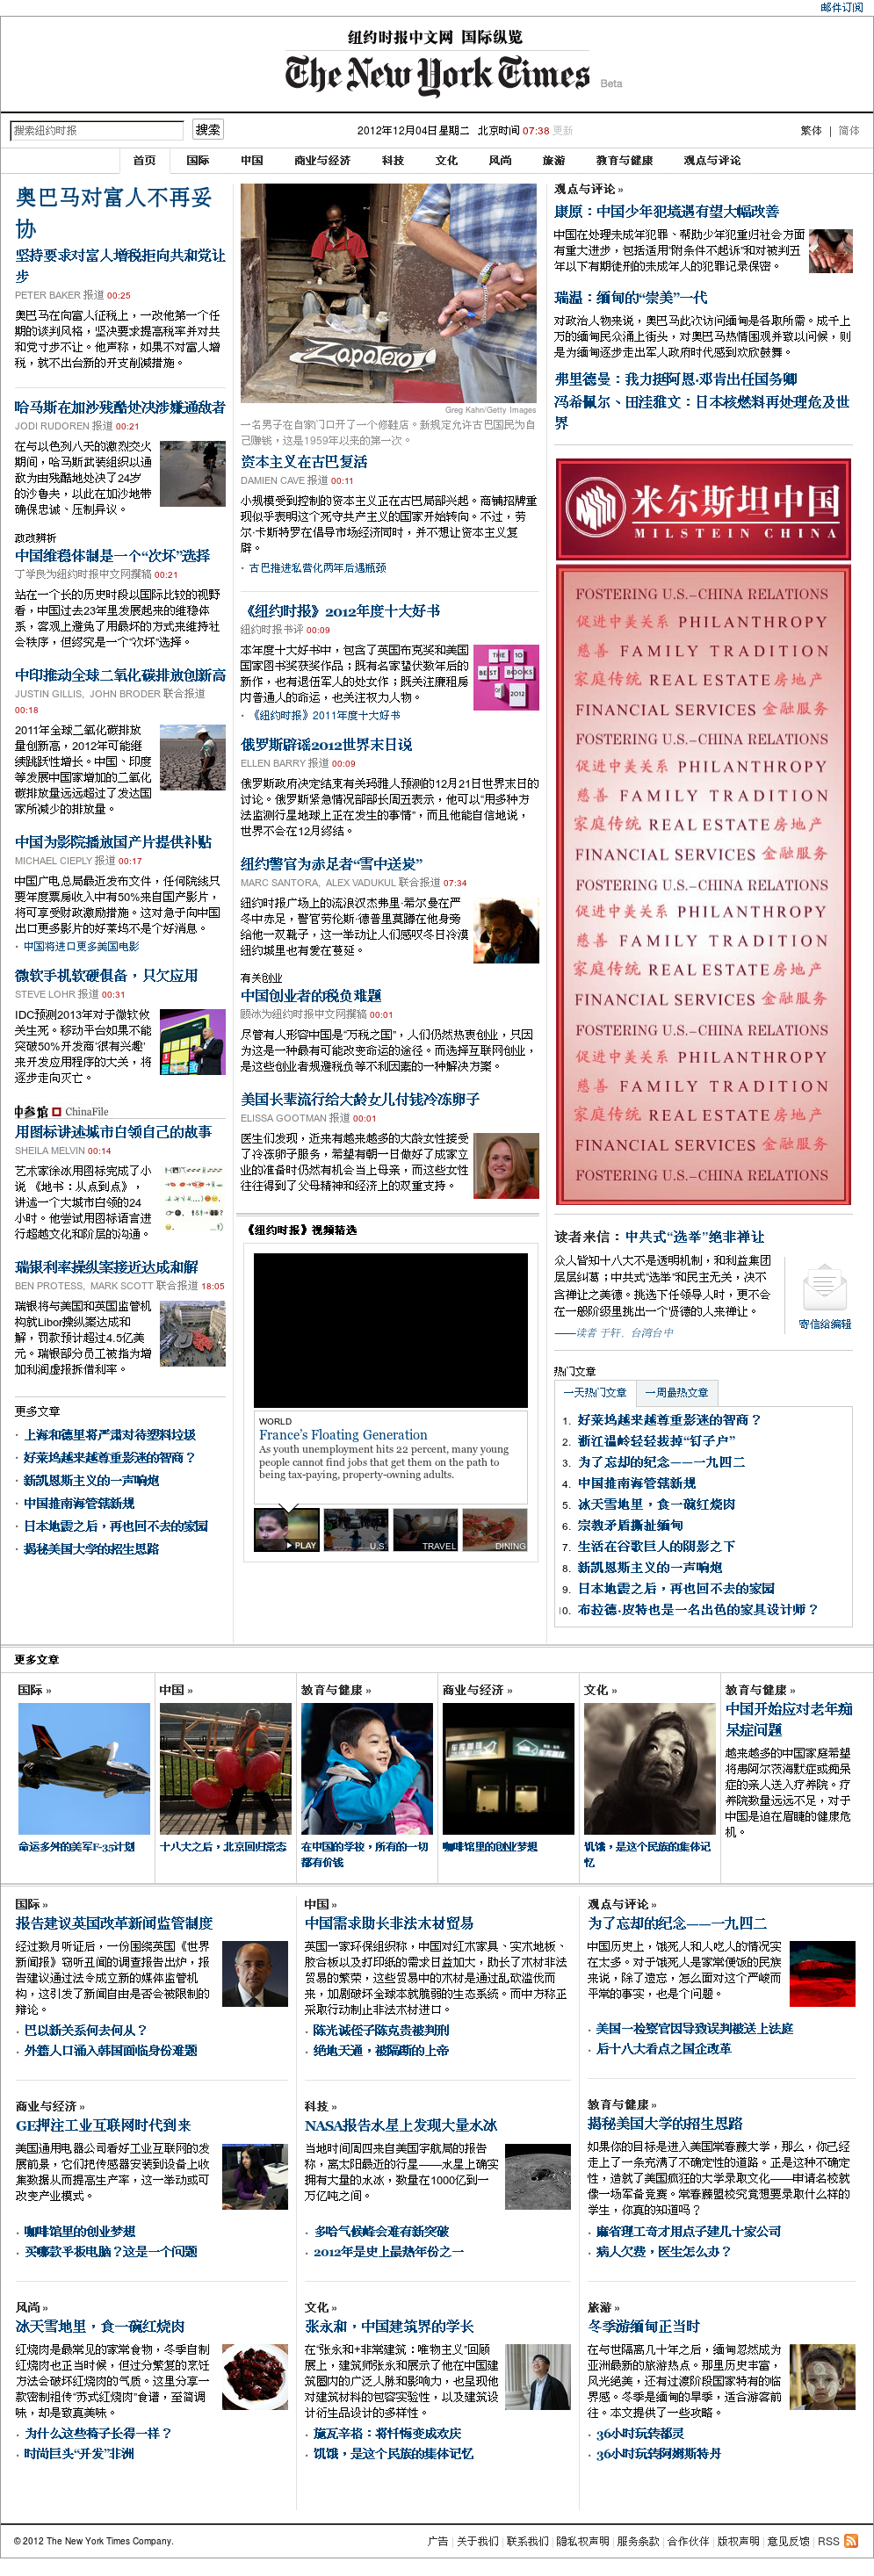 The New York Times (Chinese) at Tuesday Dec. 4, 2012, 12:21 a.m. UTC